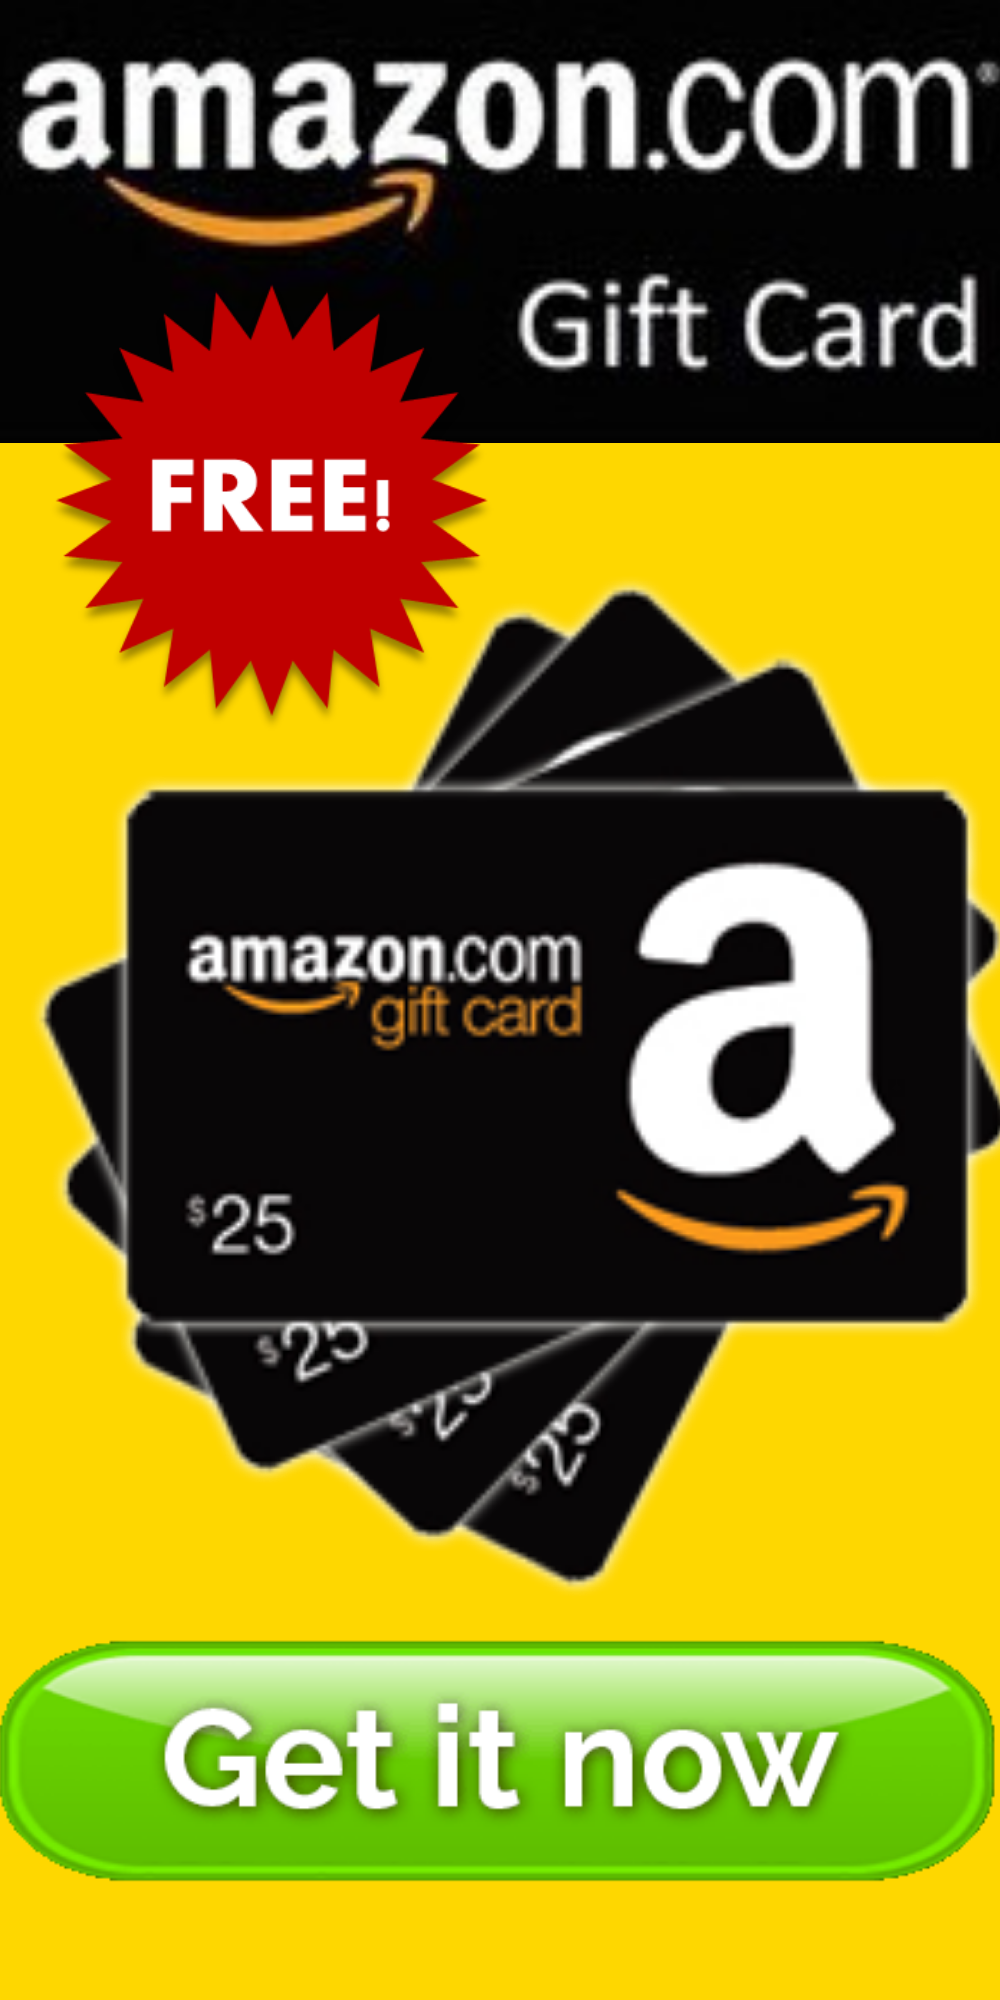 Get Free Amazon Gift Cards Fast Amazon Gift Card Free Amazon Gift Cards Free Amazon Products